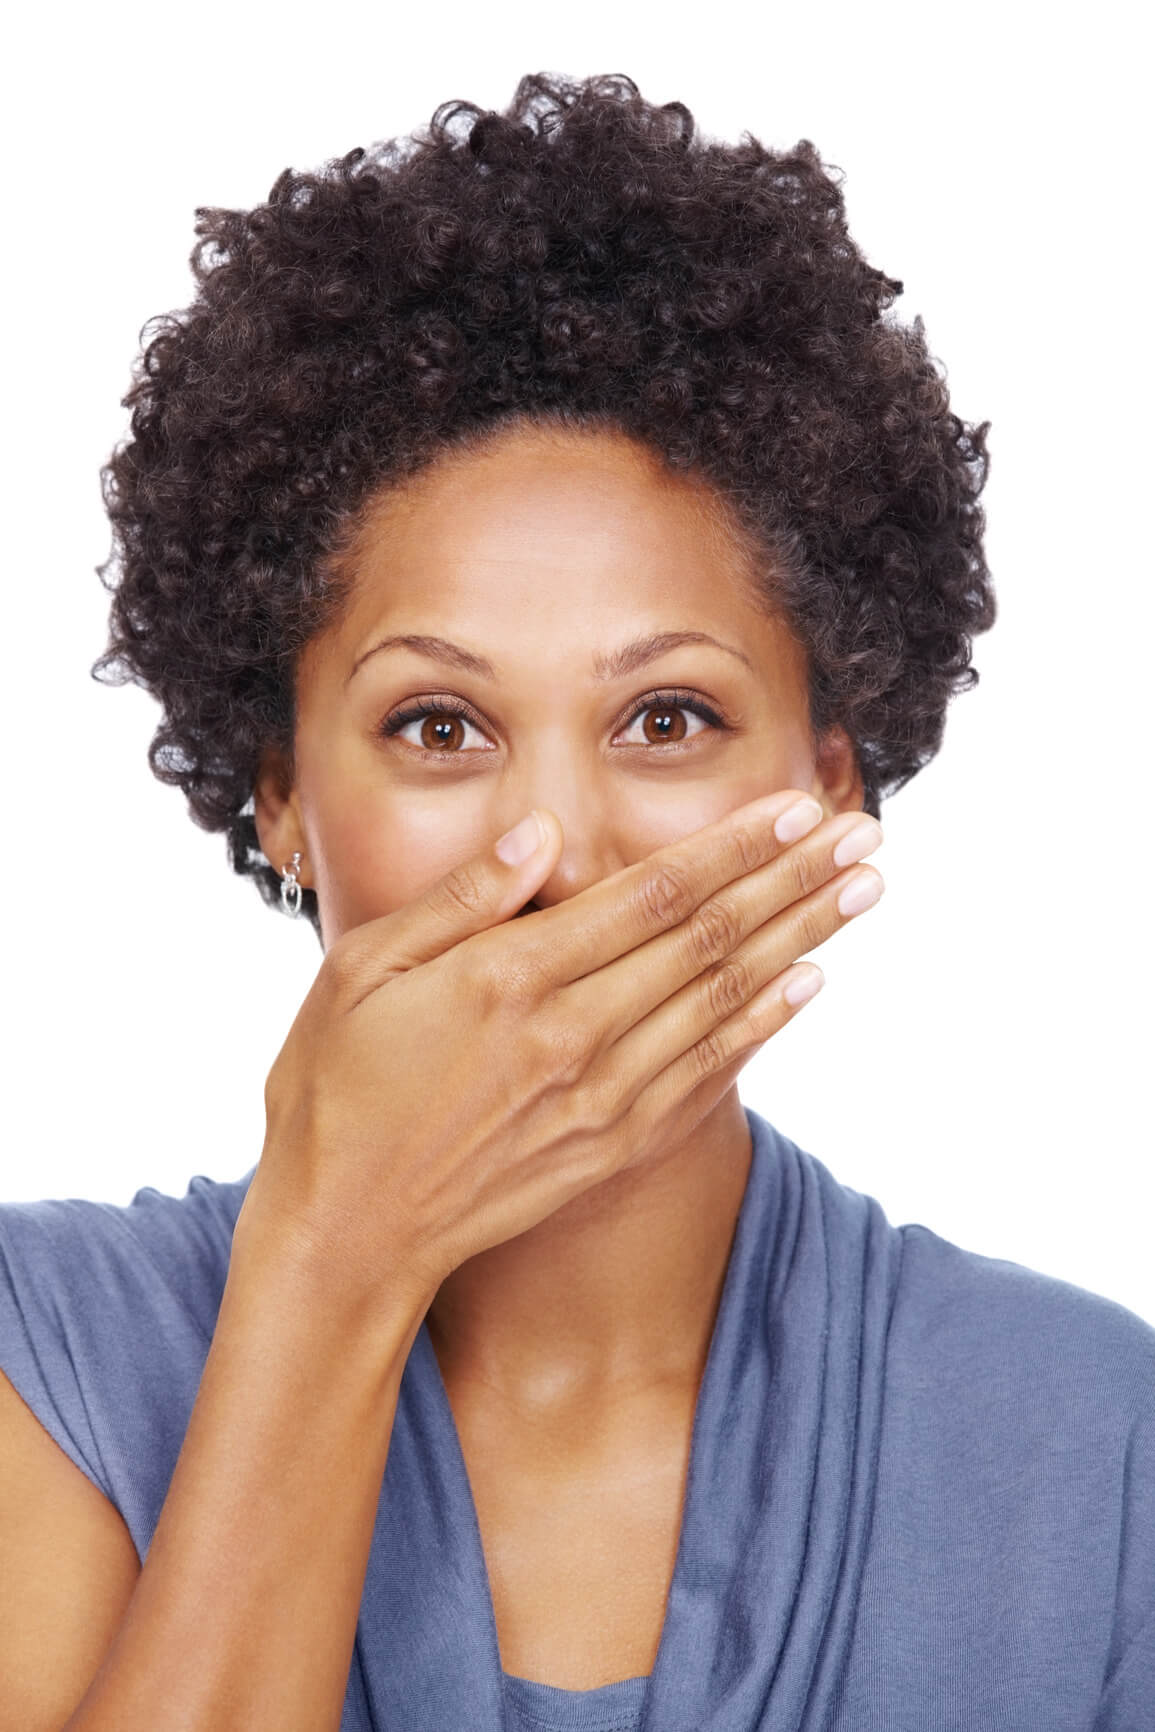 smiling-young-woman-covering-her-mouth-with-hand